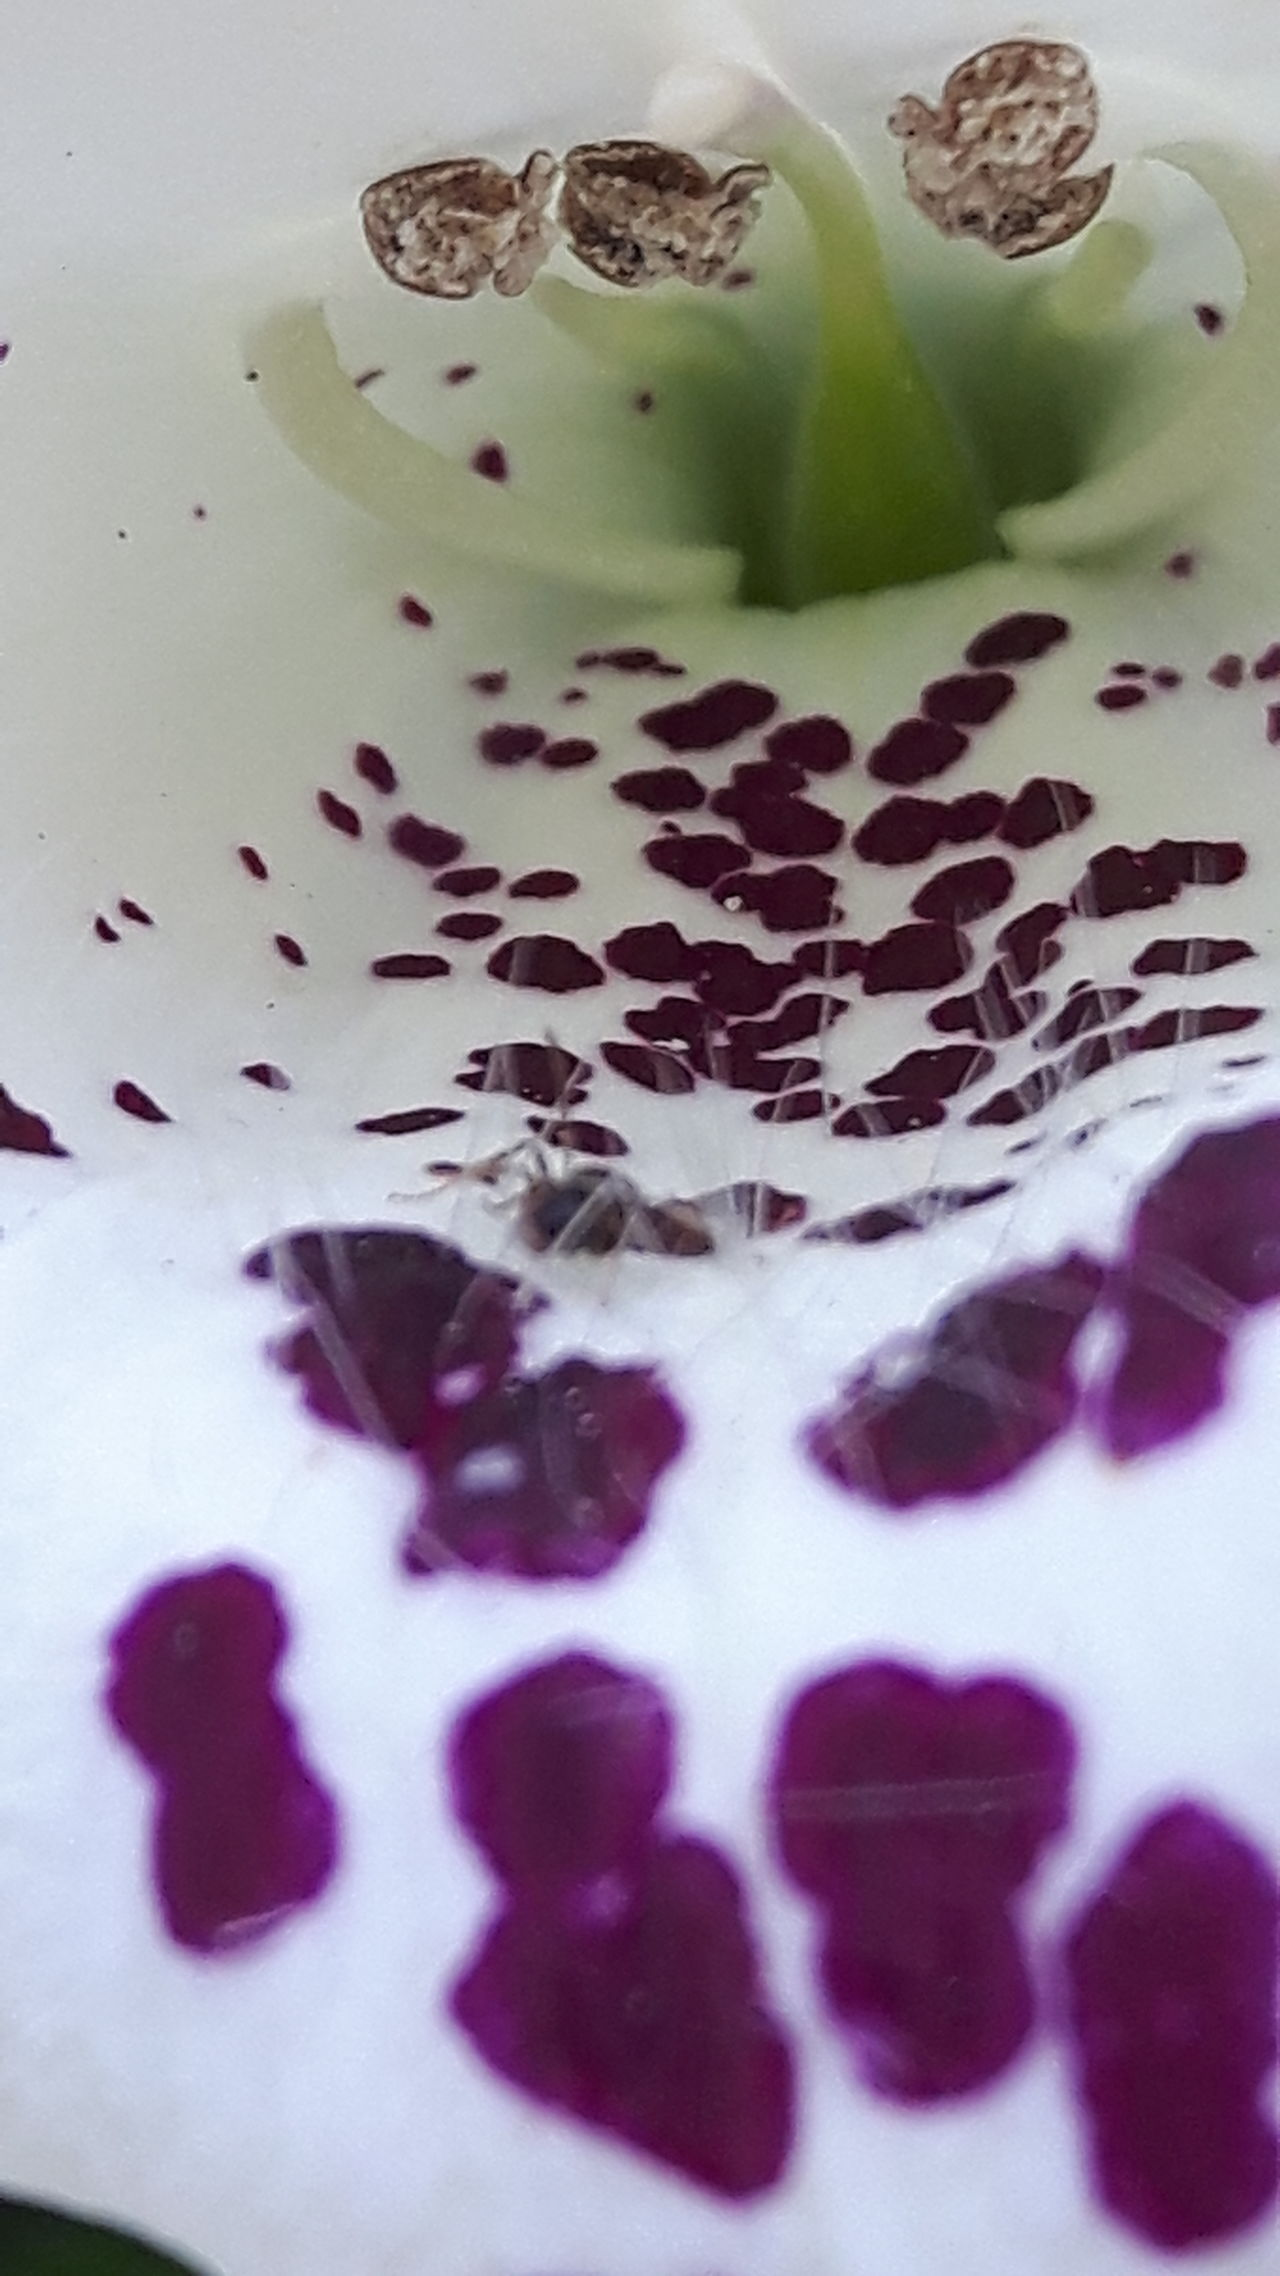 Inside a Foxglove bell, where lil ants dwell... Maximum Closeness Smartphone Photography No Edits No Filters Flowers, Nature And Beauty Macro_captures Macro_flower Beauty In Nature Floral Photography Flower Photography Love Flowers🌷💕 Macro Focus On Macro Beauty Macroshot Flowerlovers Flower Head Flowers In My Garden Flower Addict